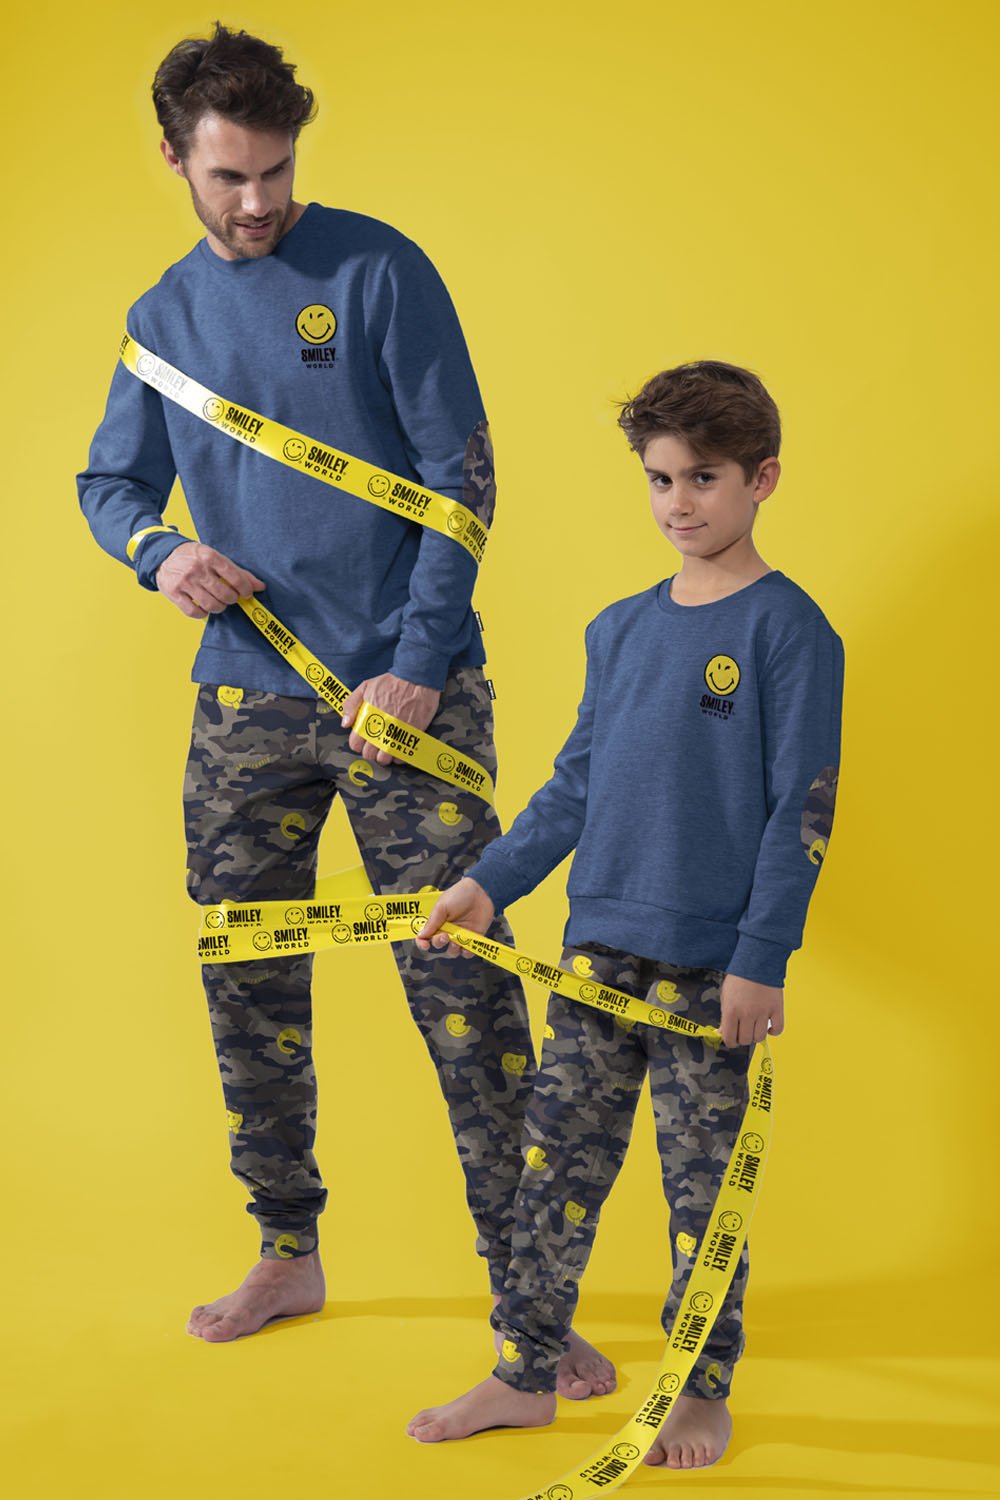 5Y1A3397 smiley camouflage